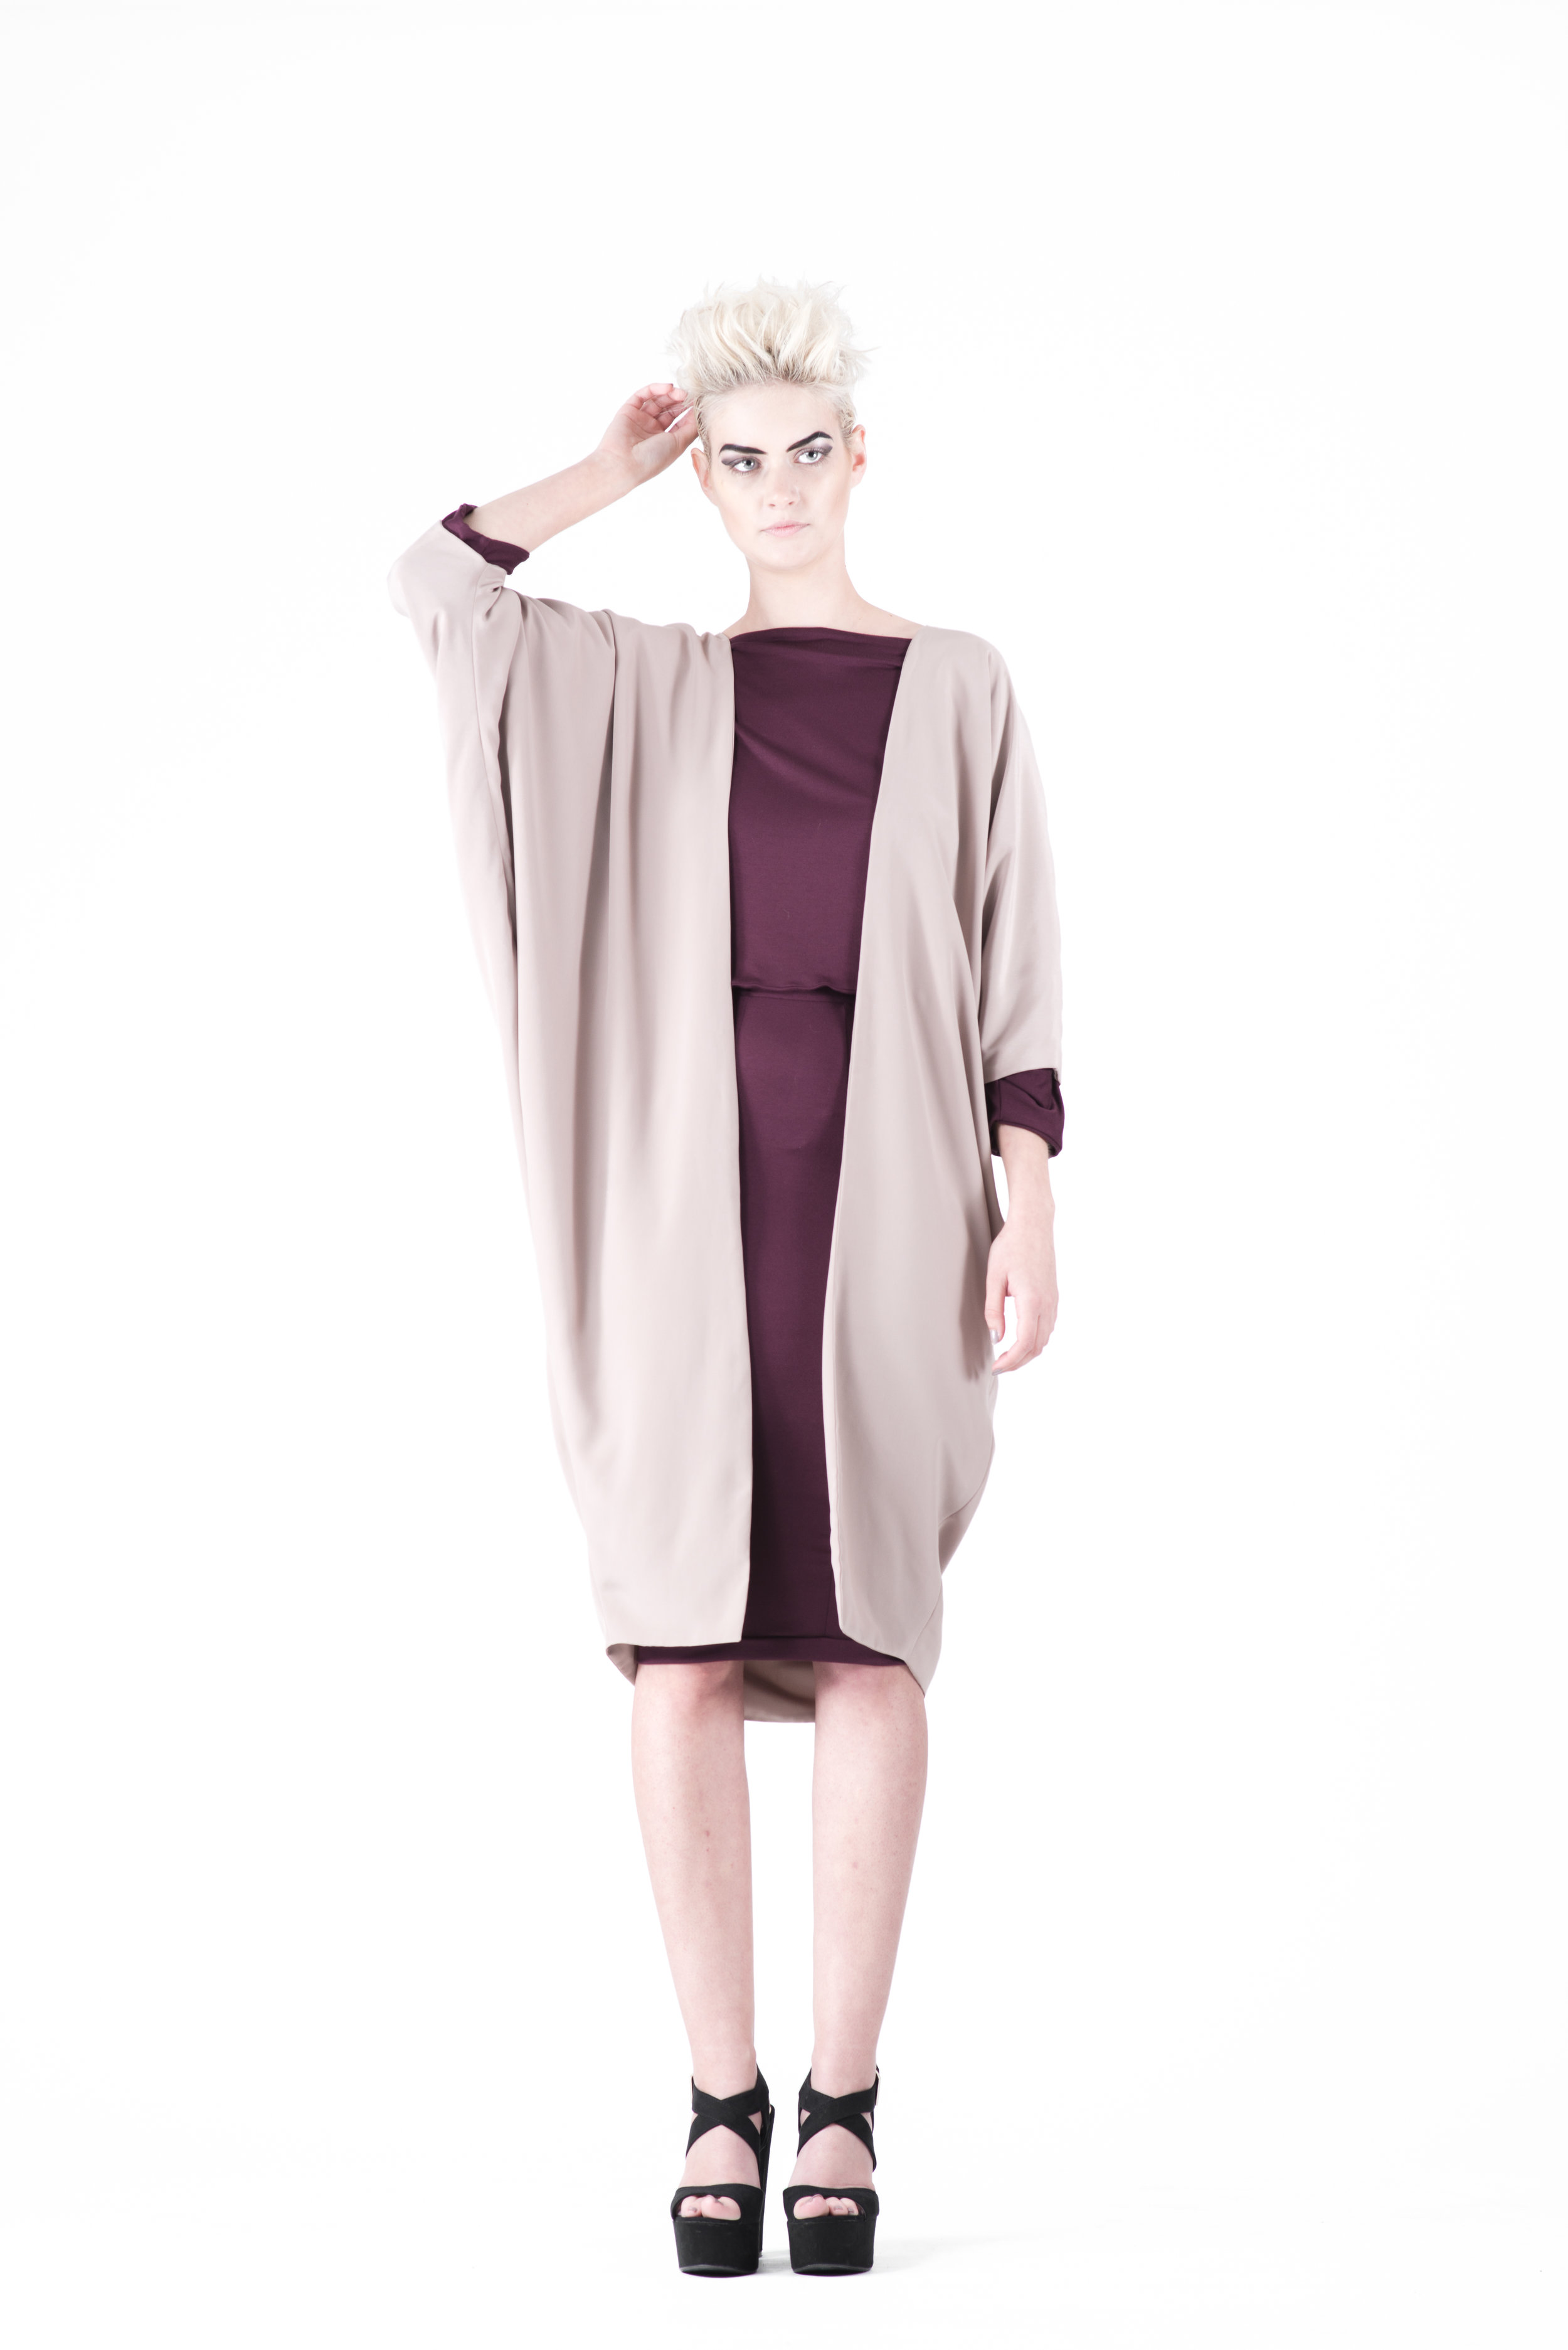 zaramia-ava-zaramiaava-leeds-fashion-designer-ethical-sustainable-tailored-minimalist-jacket-nude-ayame-coat-mika-plum-top-yuko-plum-versatile-drape-cowl-styling-womenswear-models-photoshoot-1